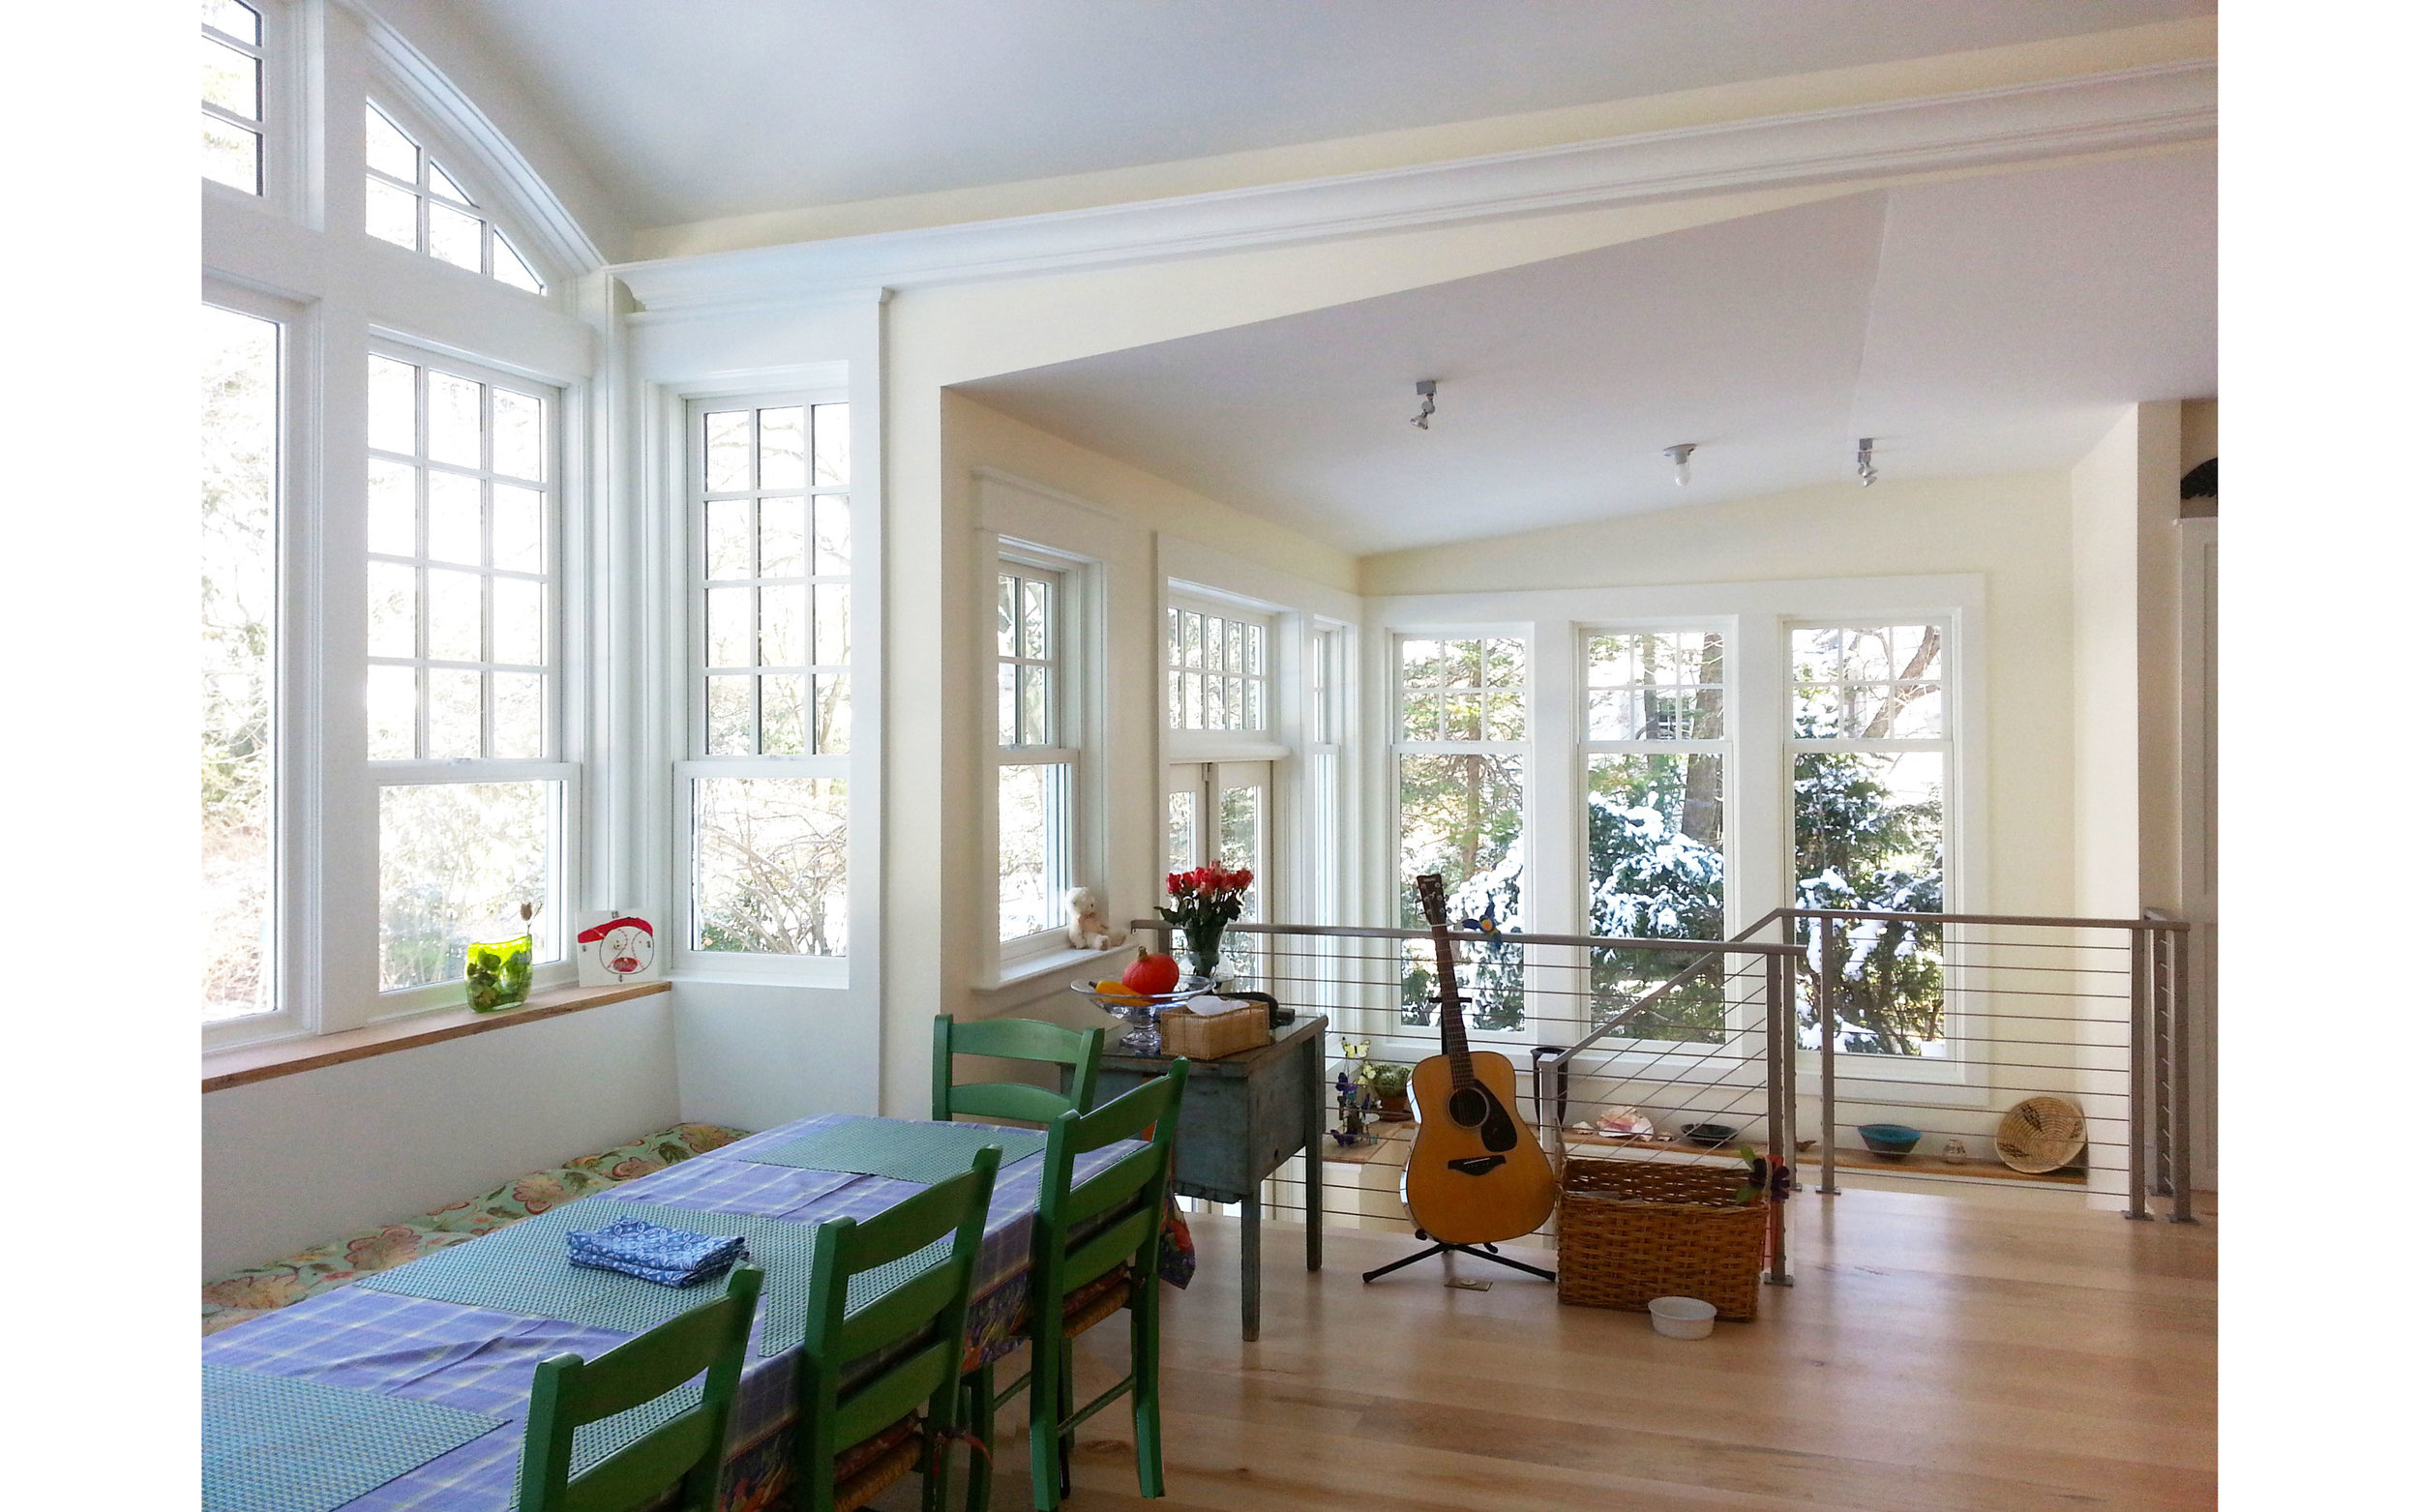 Scarsdale-2-kitchen-windows-seating-area.jpg